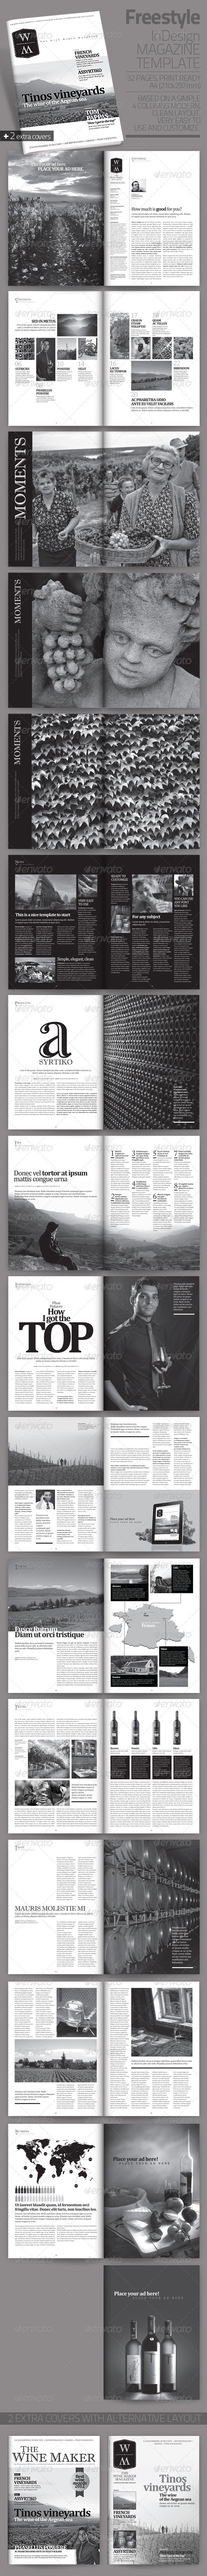 Freestyle | InDesign Magazine Template - Magazines Print Templates